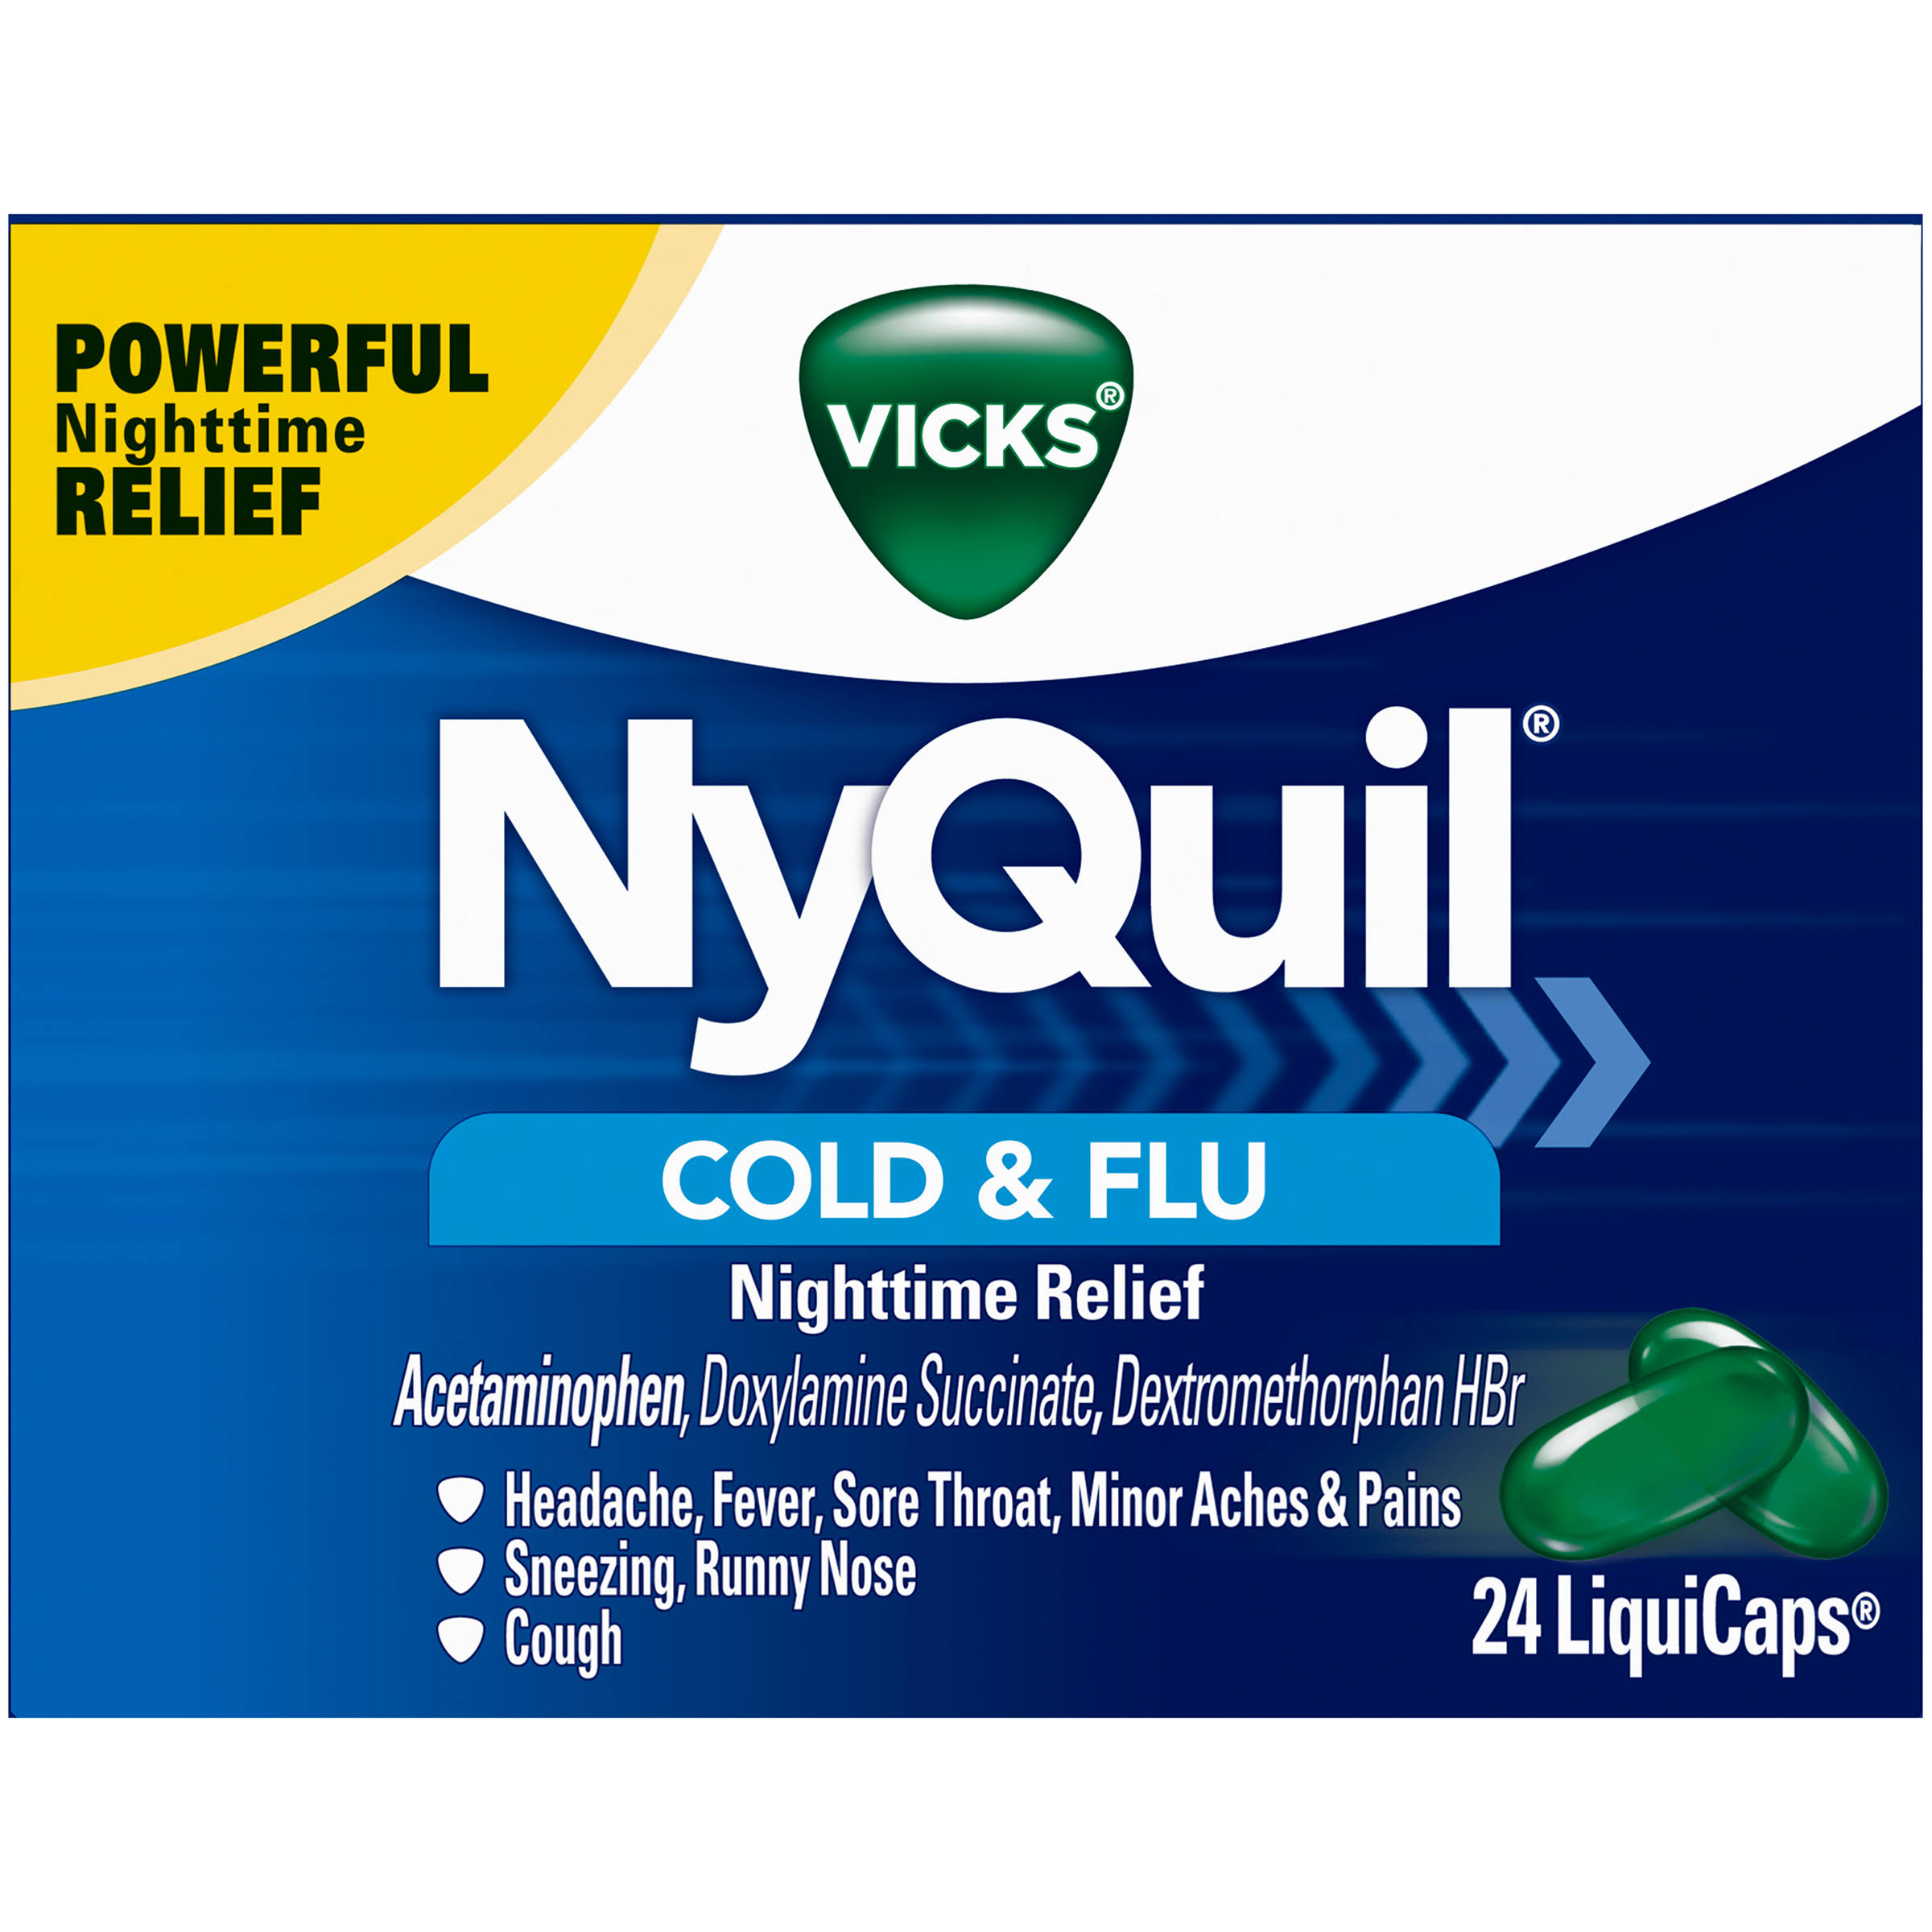 Vicks NyQuil Cold & Flu Nighttime Relief - 24 LiquiCaps